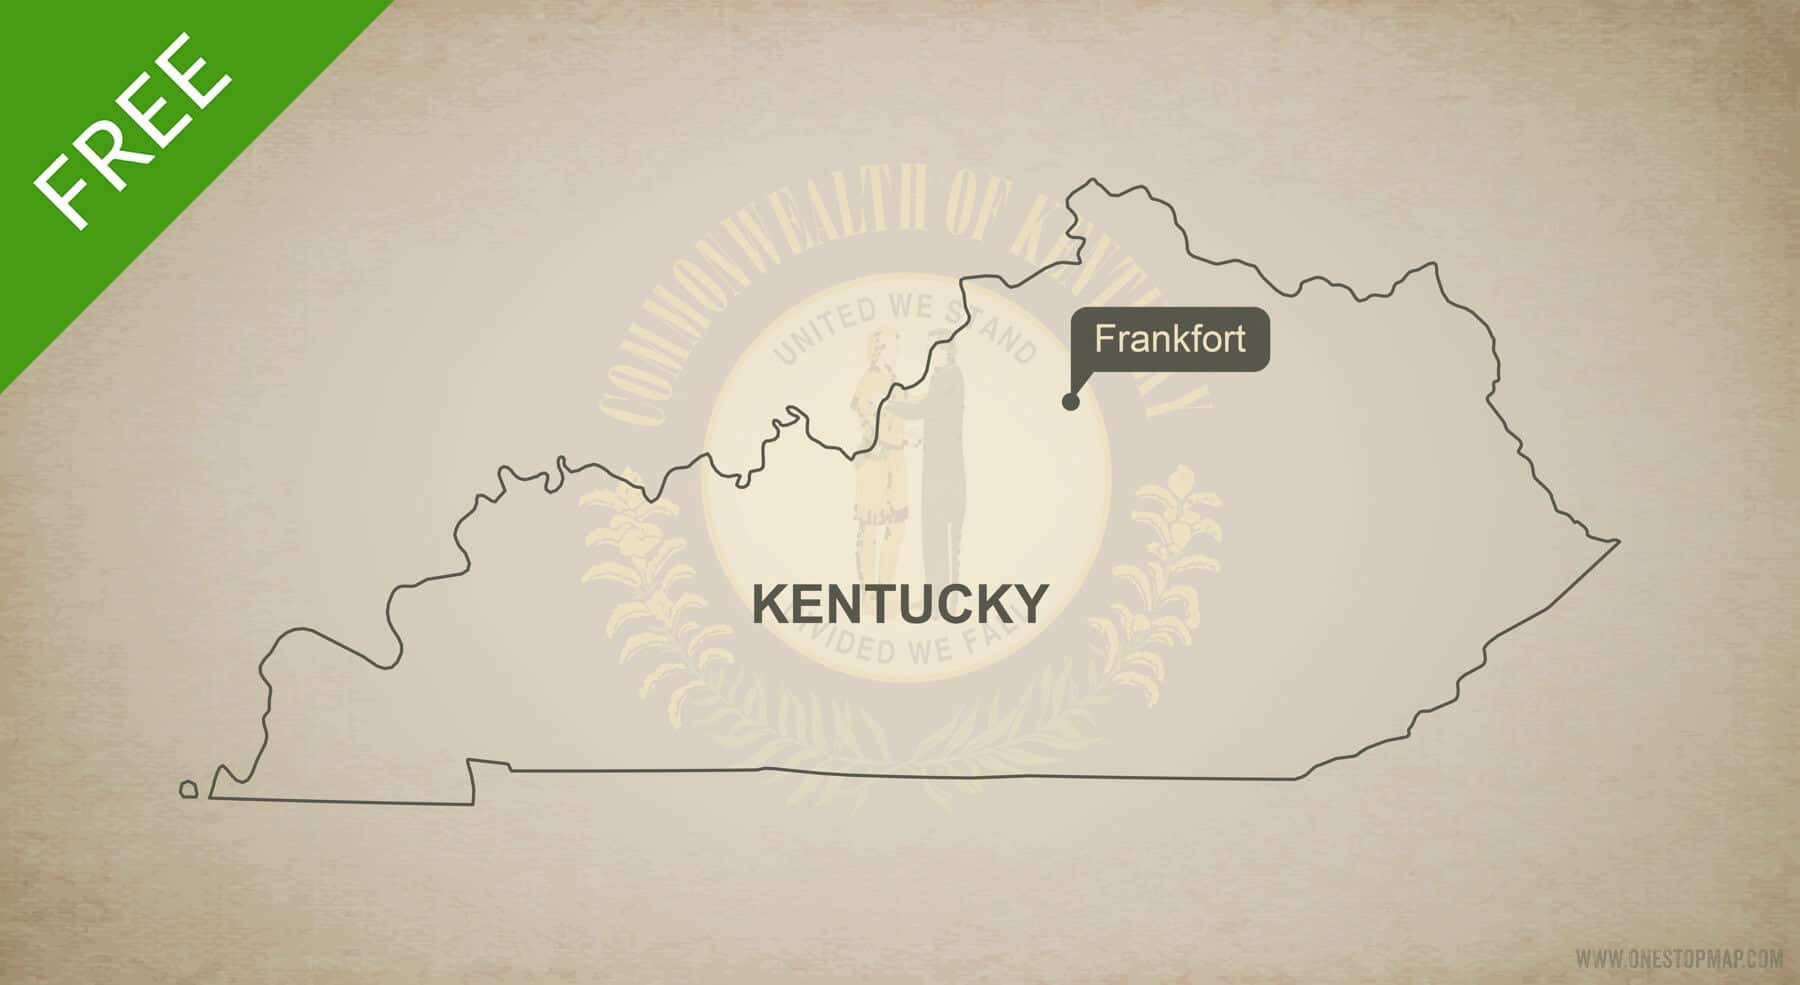 Free vector map of Kentucky outline | One Stop Map